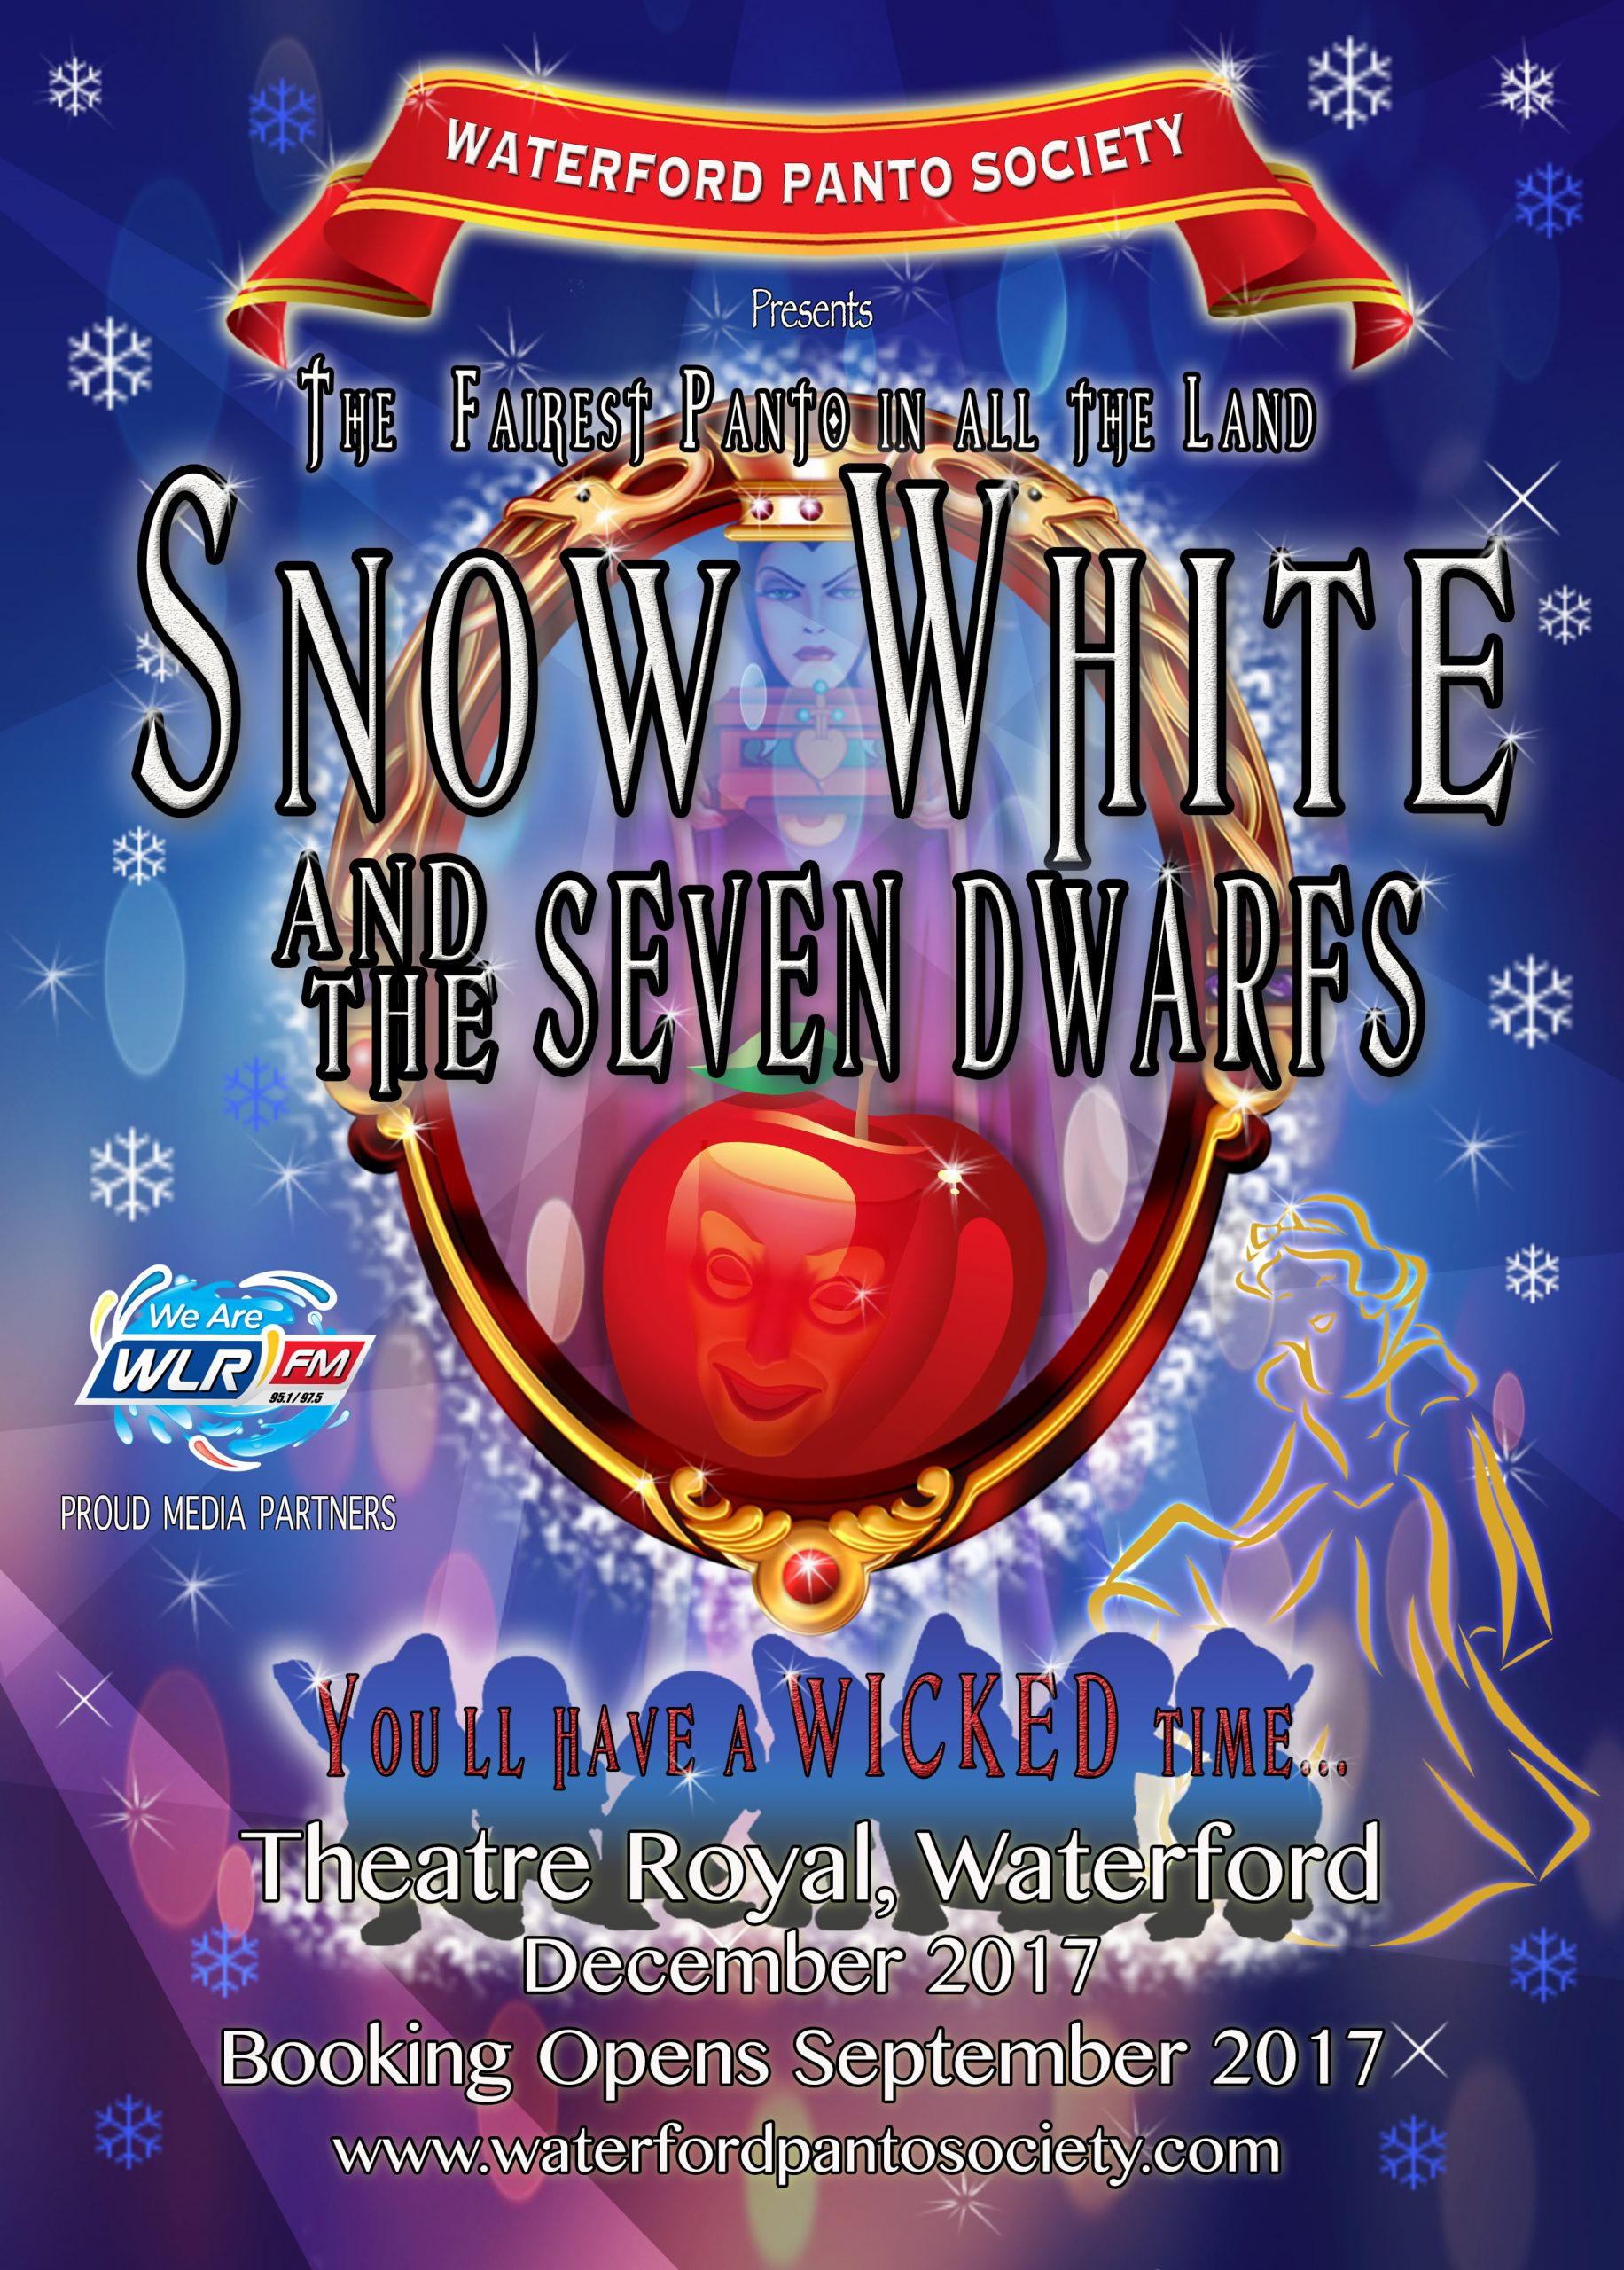 Sensory Performance of Snow White and the Seven Dwarves at The Theatre Royal